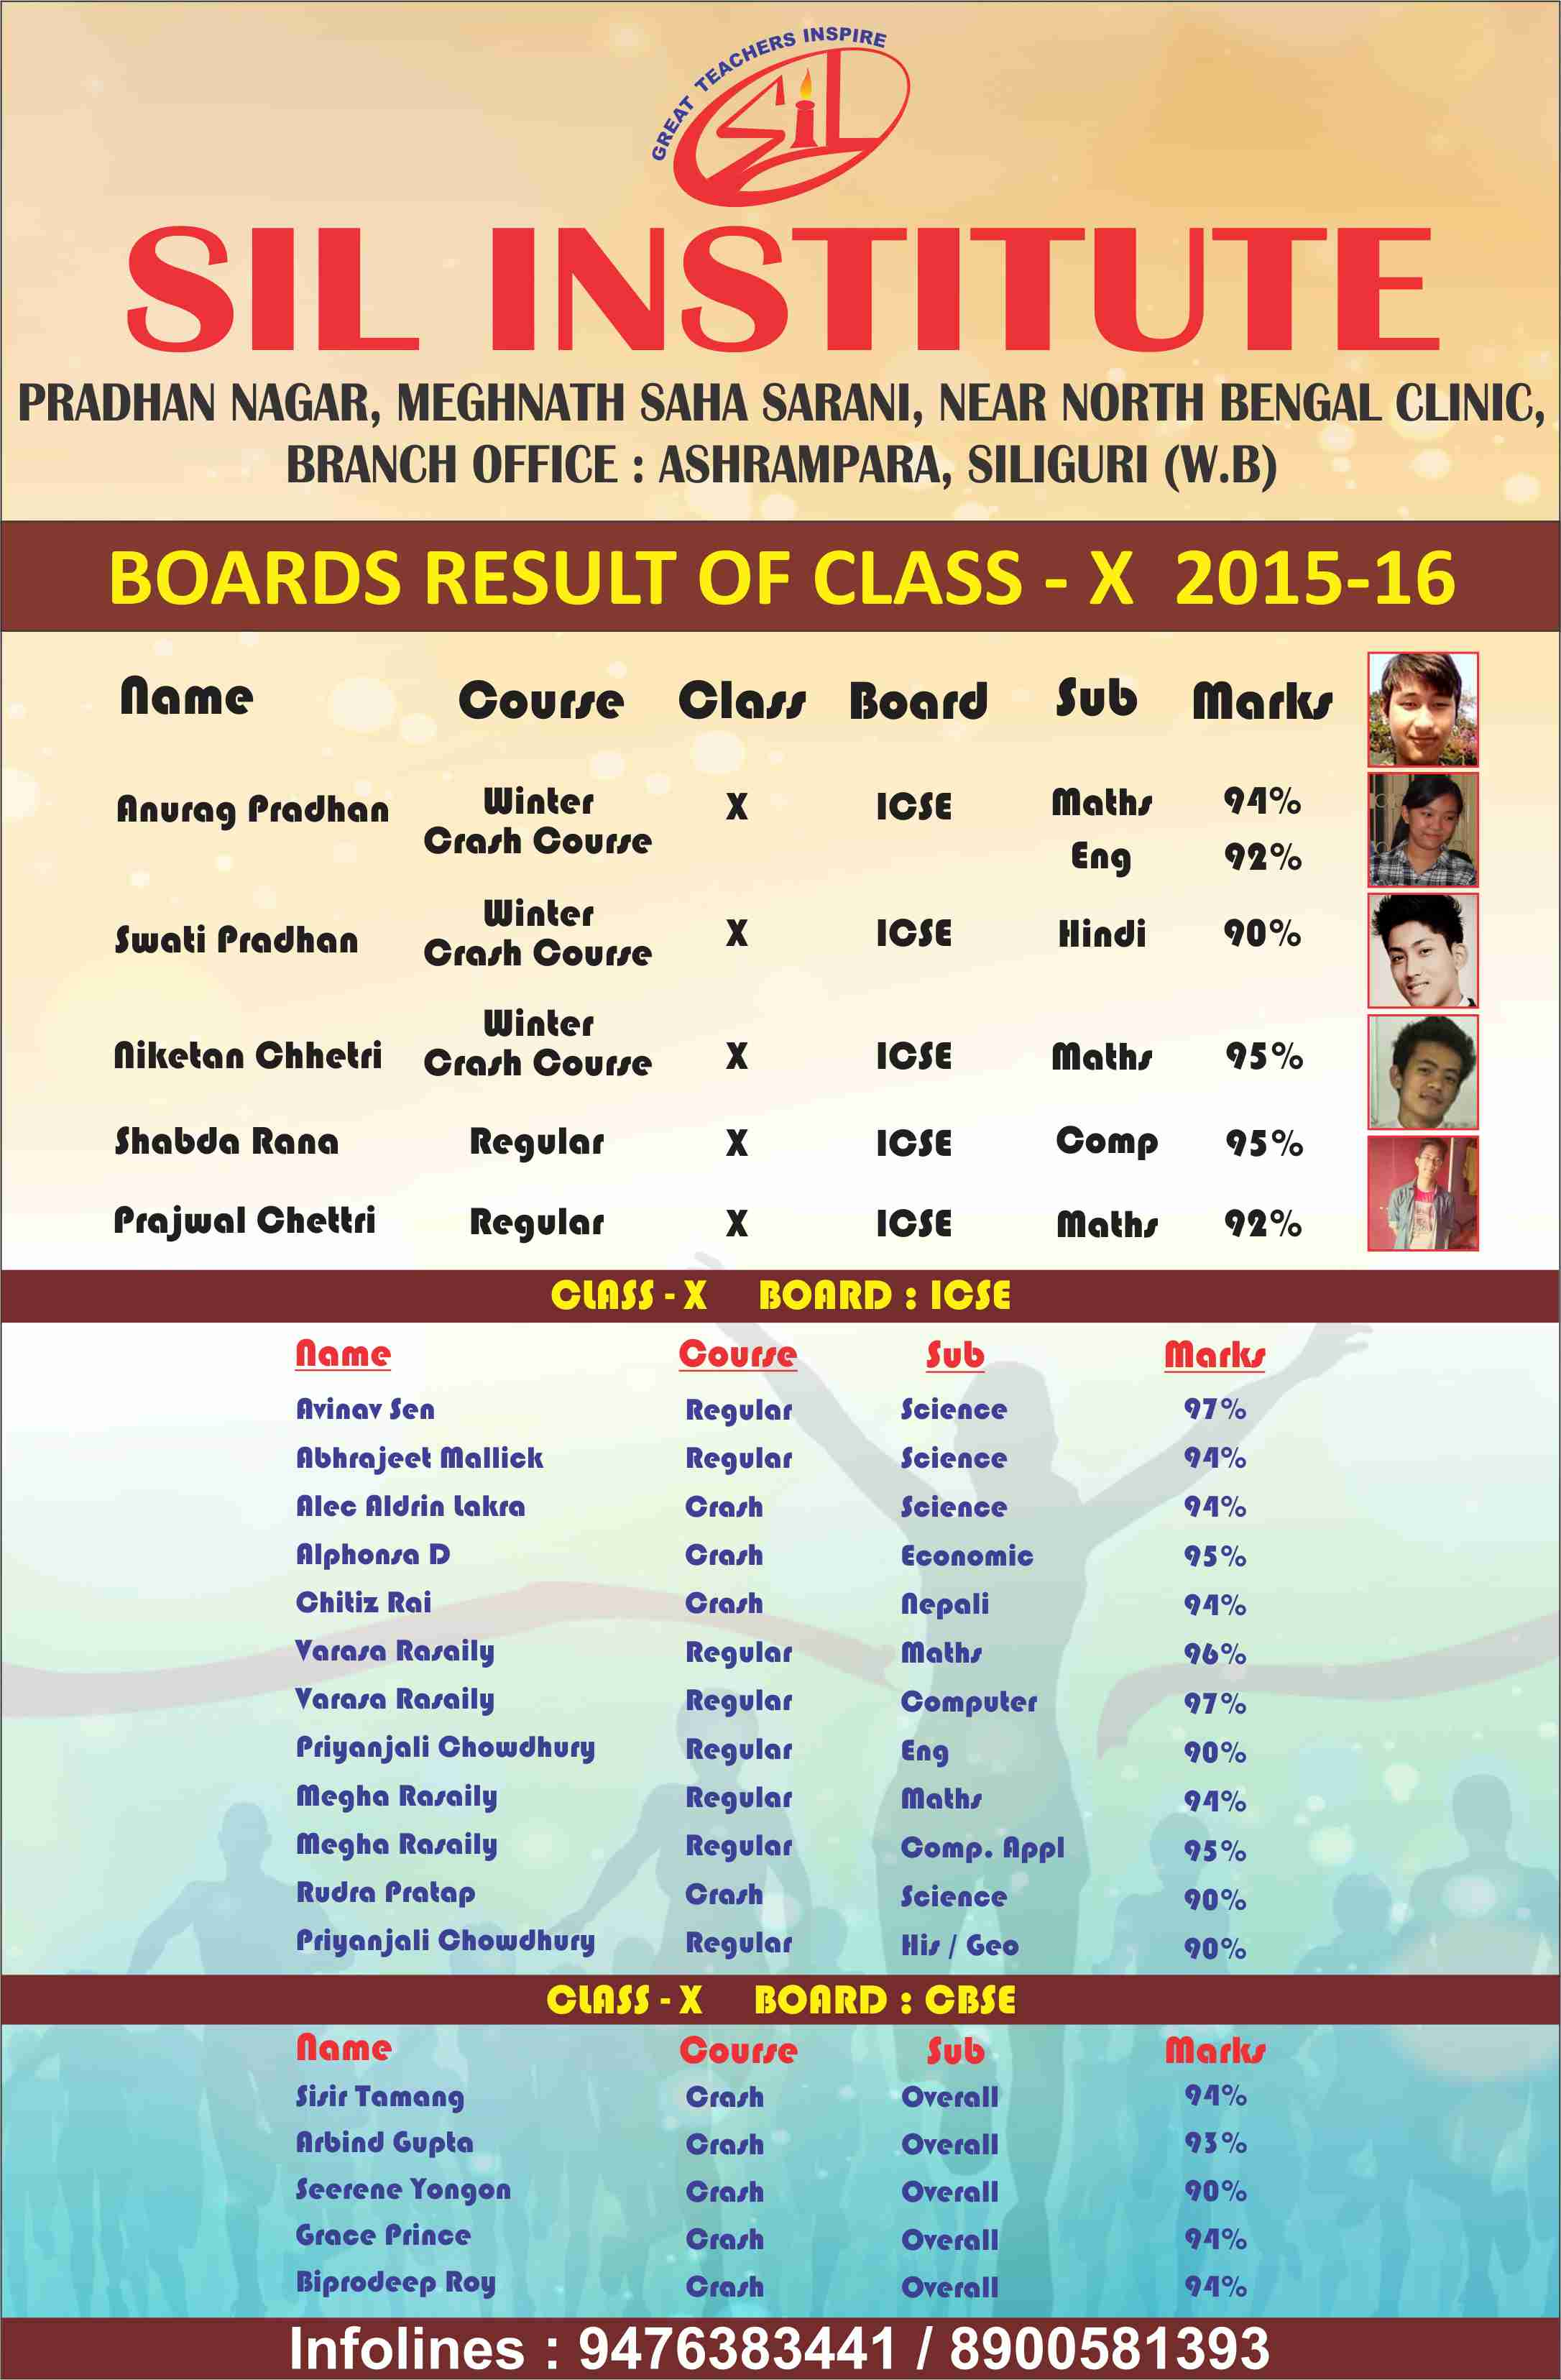 Boards Result of Class X 2015-16